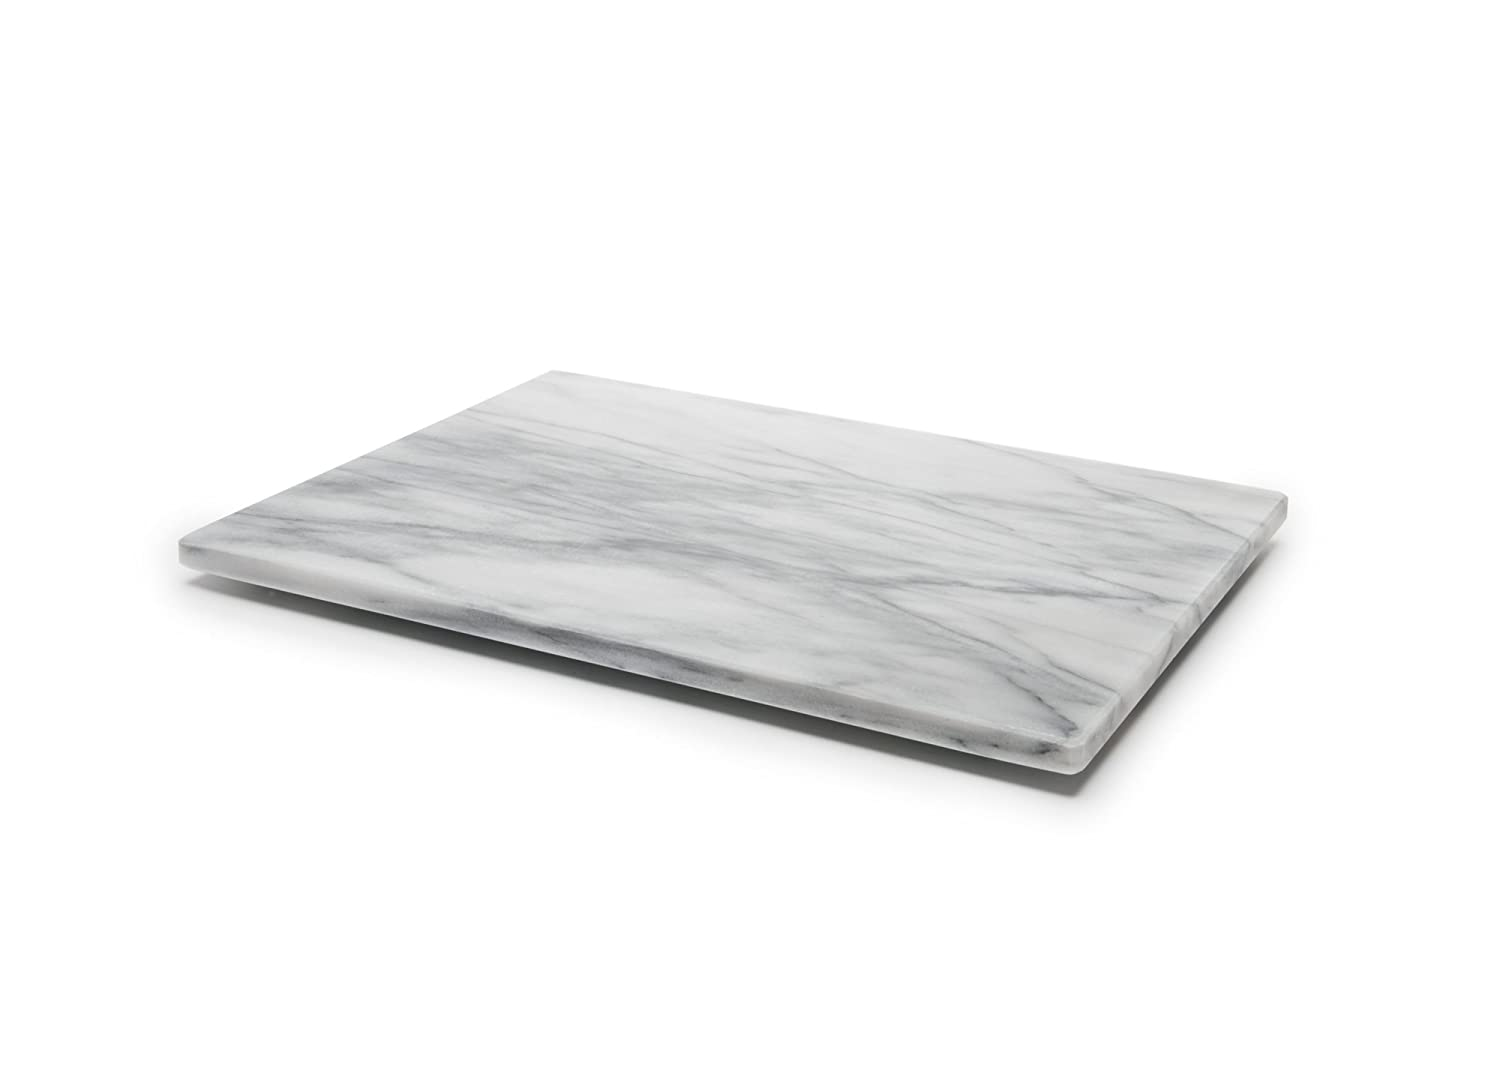 Fox Run White Marble Pastry Board by Fox Run B0036AQ0IC